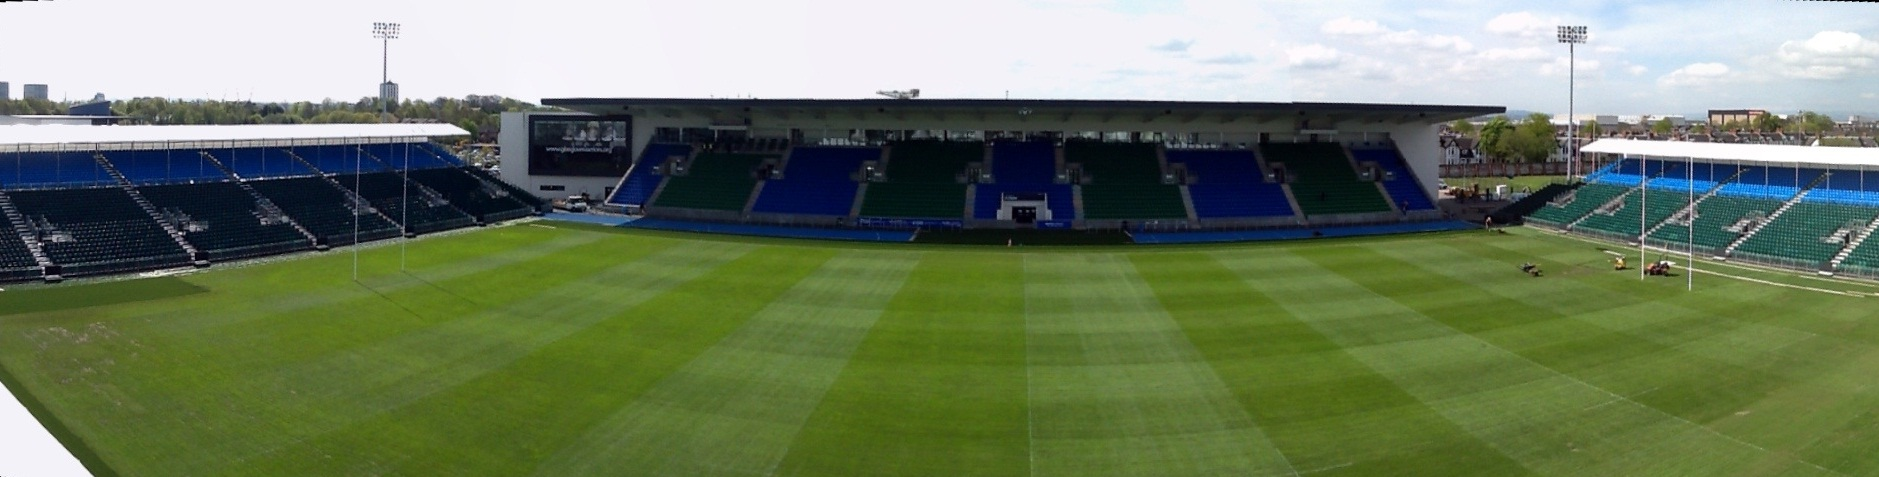 Scotstoun stadium ready for action this saturday